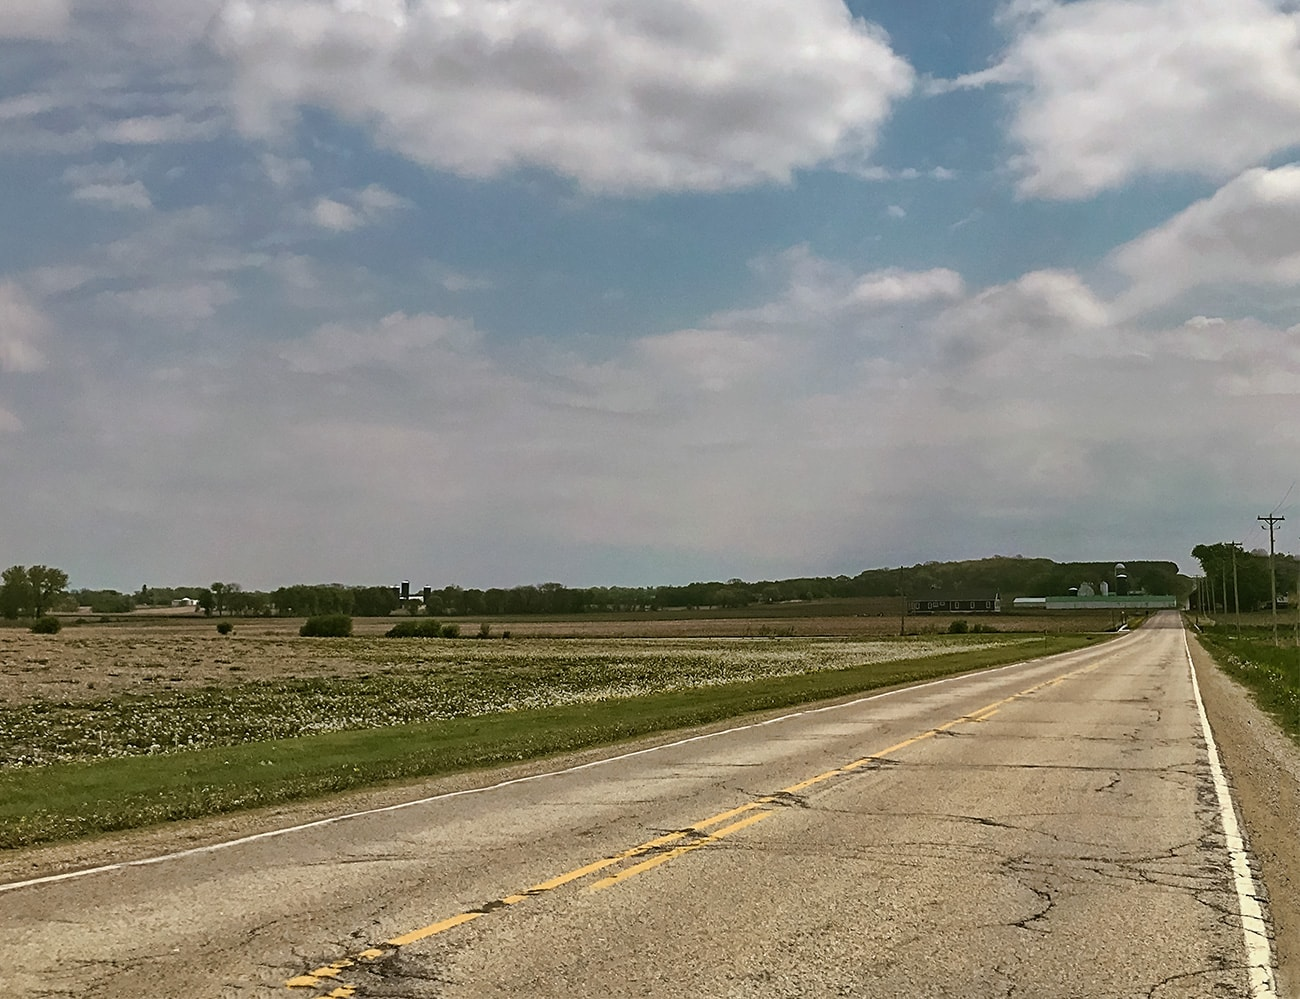 4 Days in the US – Day 1 From Chicago to Fitchburg